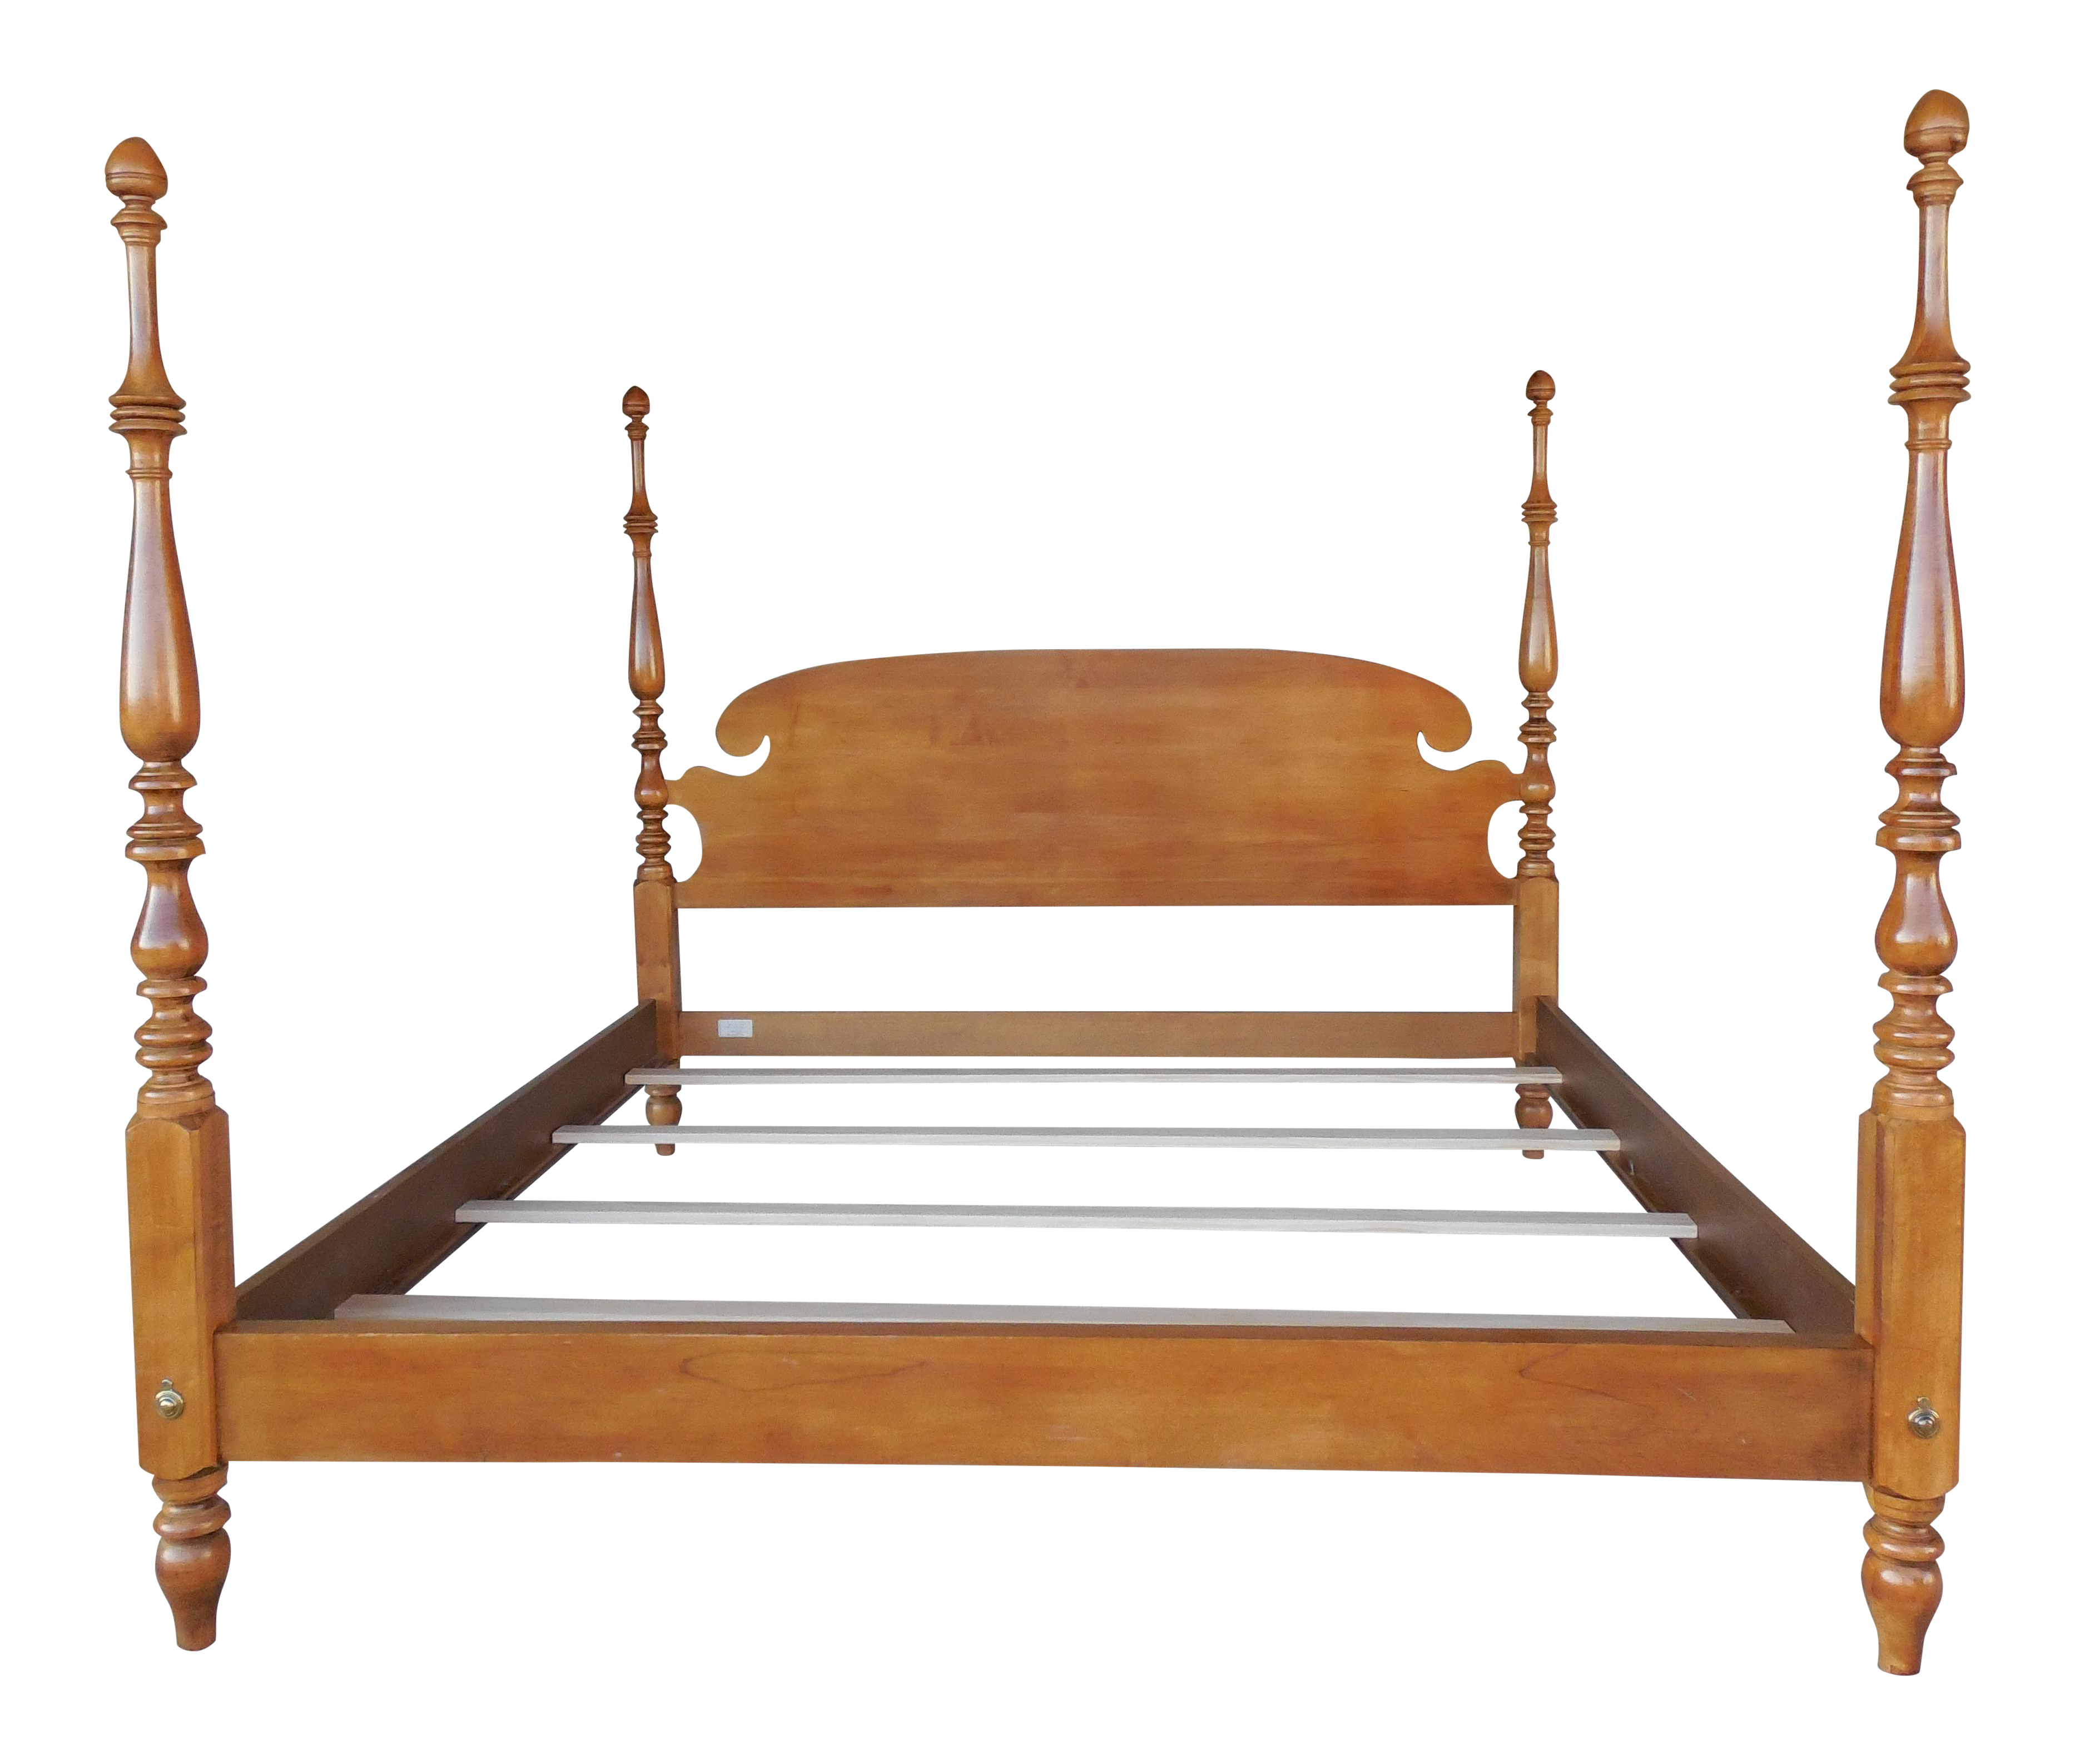 storage high grey queen with wooden pc image for set low poster rails awesome metal cherry sale all sizes mattress bedroom frame platform allen king of vintage ethan canopy headboard bed wood sold single full and furniture affordable signed fascinating size build